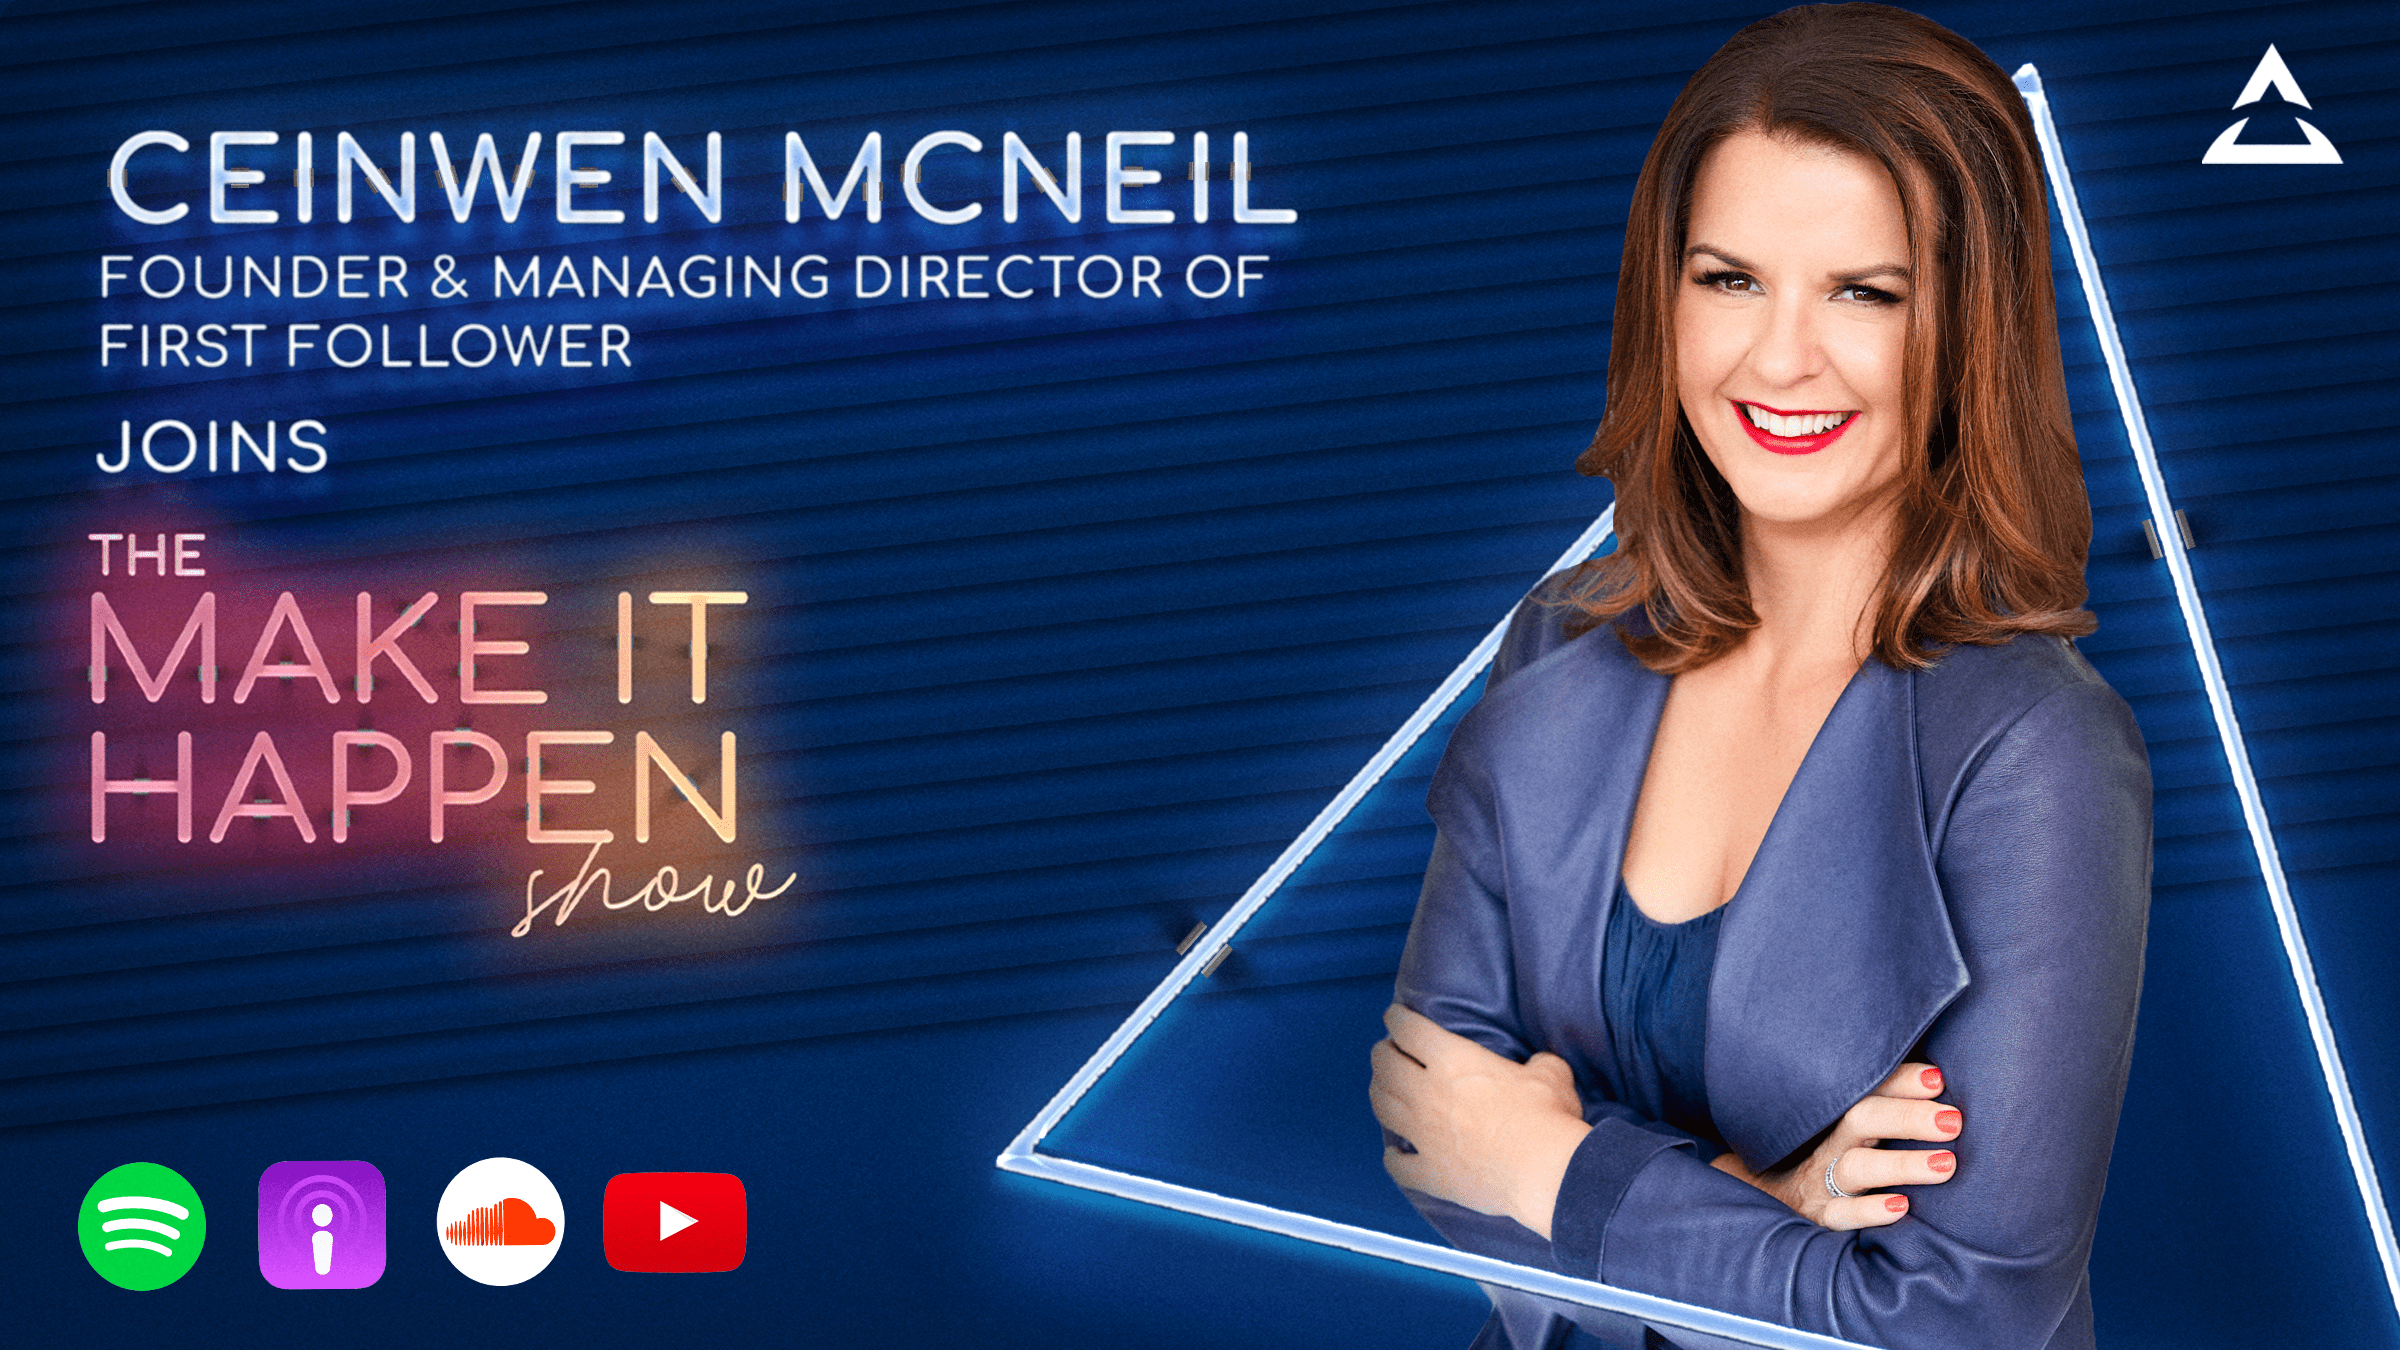 10. Ceinwen McNeil promotional image for The Make It Happen Show